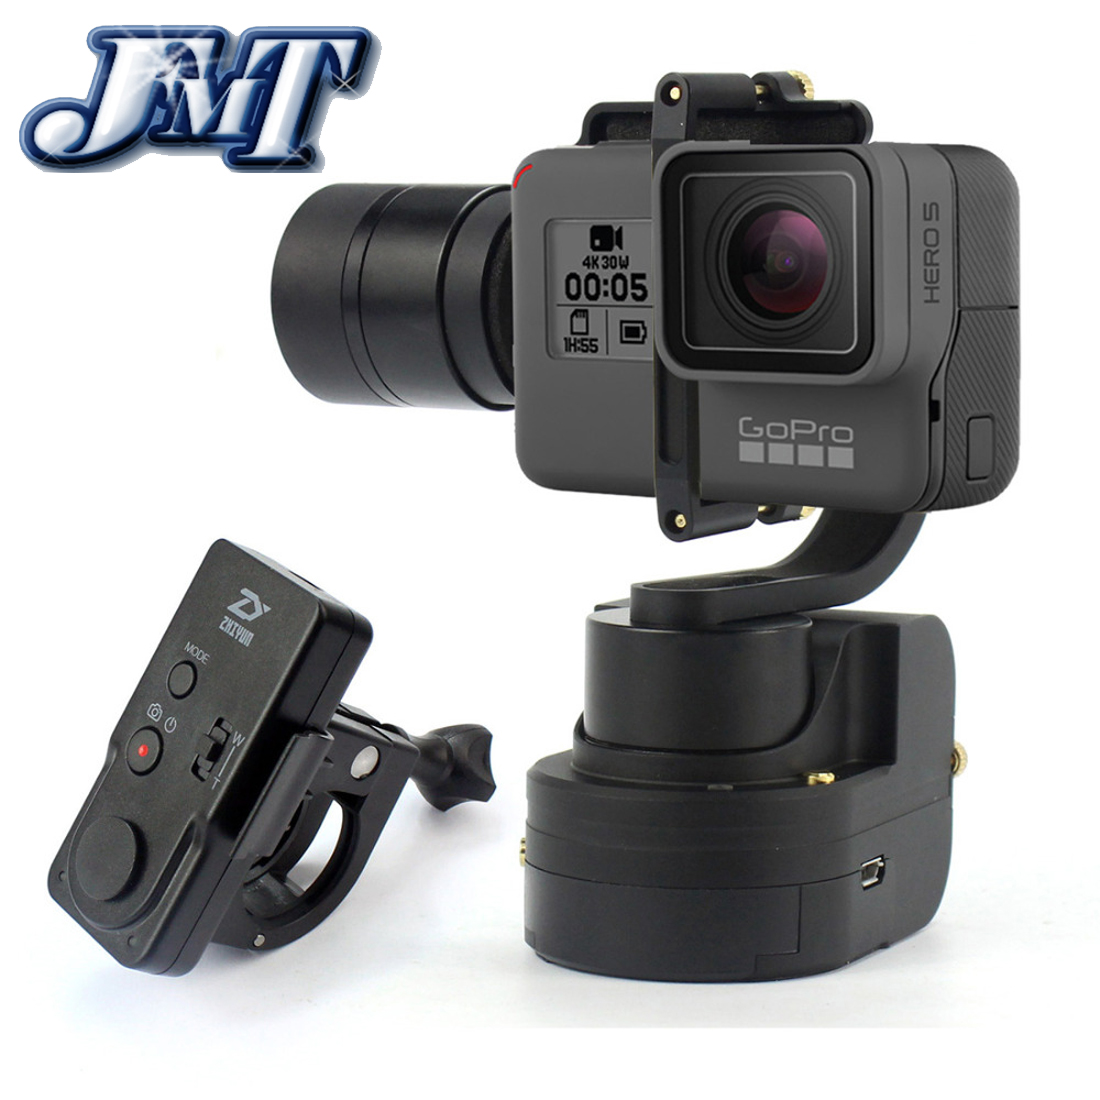 JMT Zhiyun Z1-Rider M Gimbal WG Stabilizer for GoPro Hero 5 4 Yi 4k Plus SJ CAM Support APP Wearable with Remote Tripod Bag